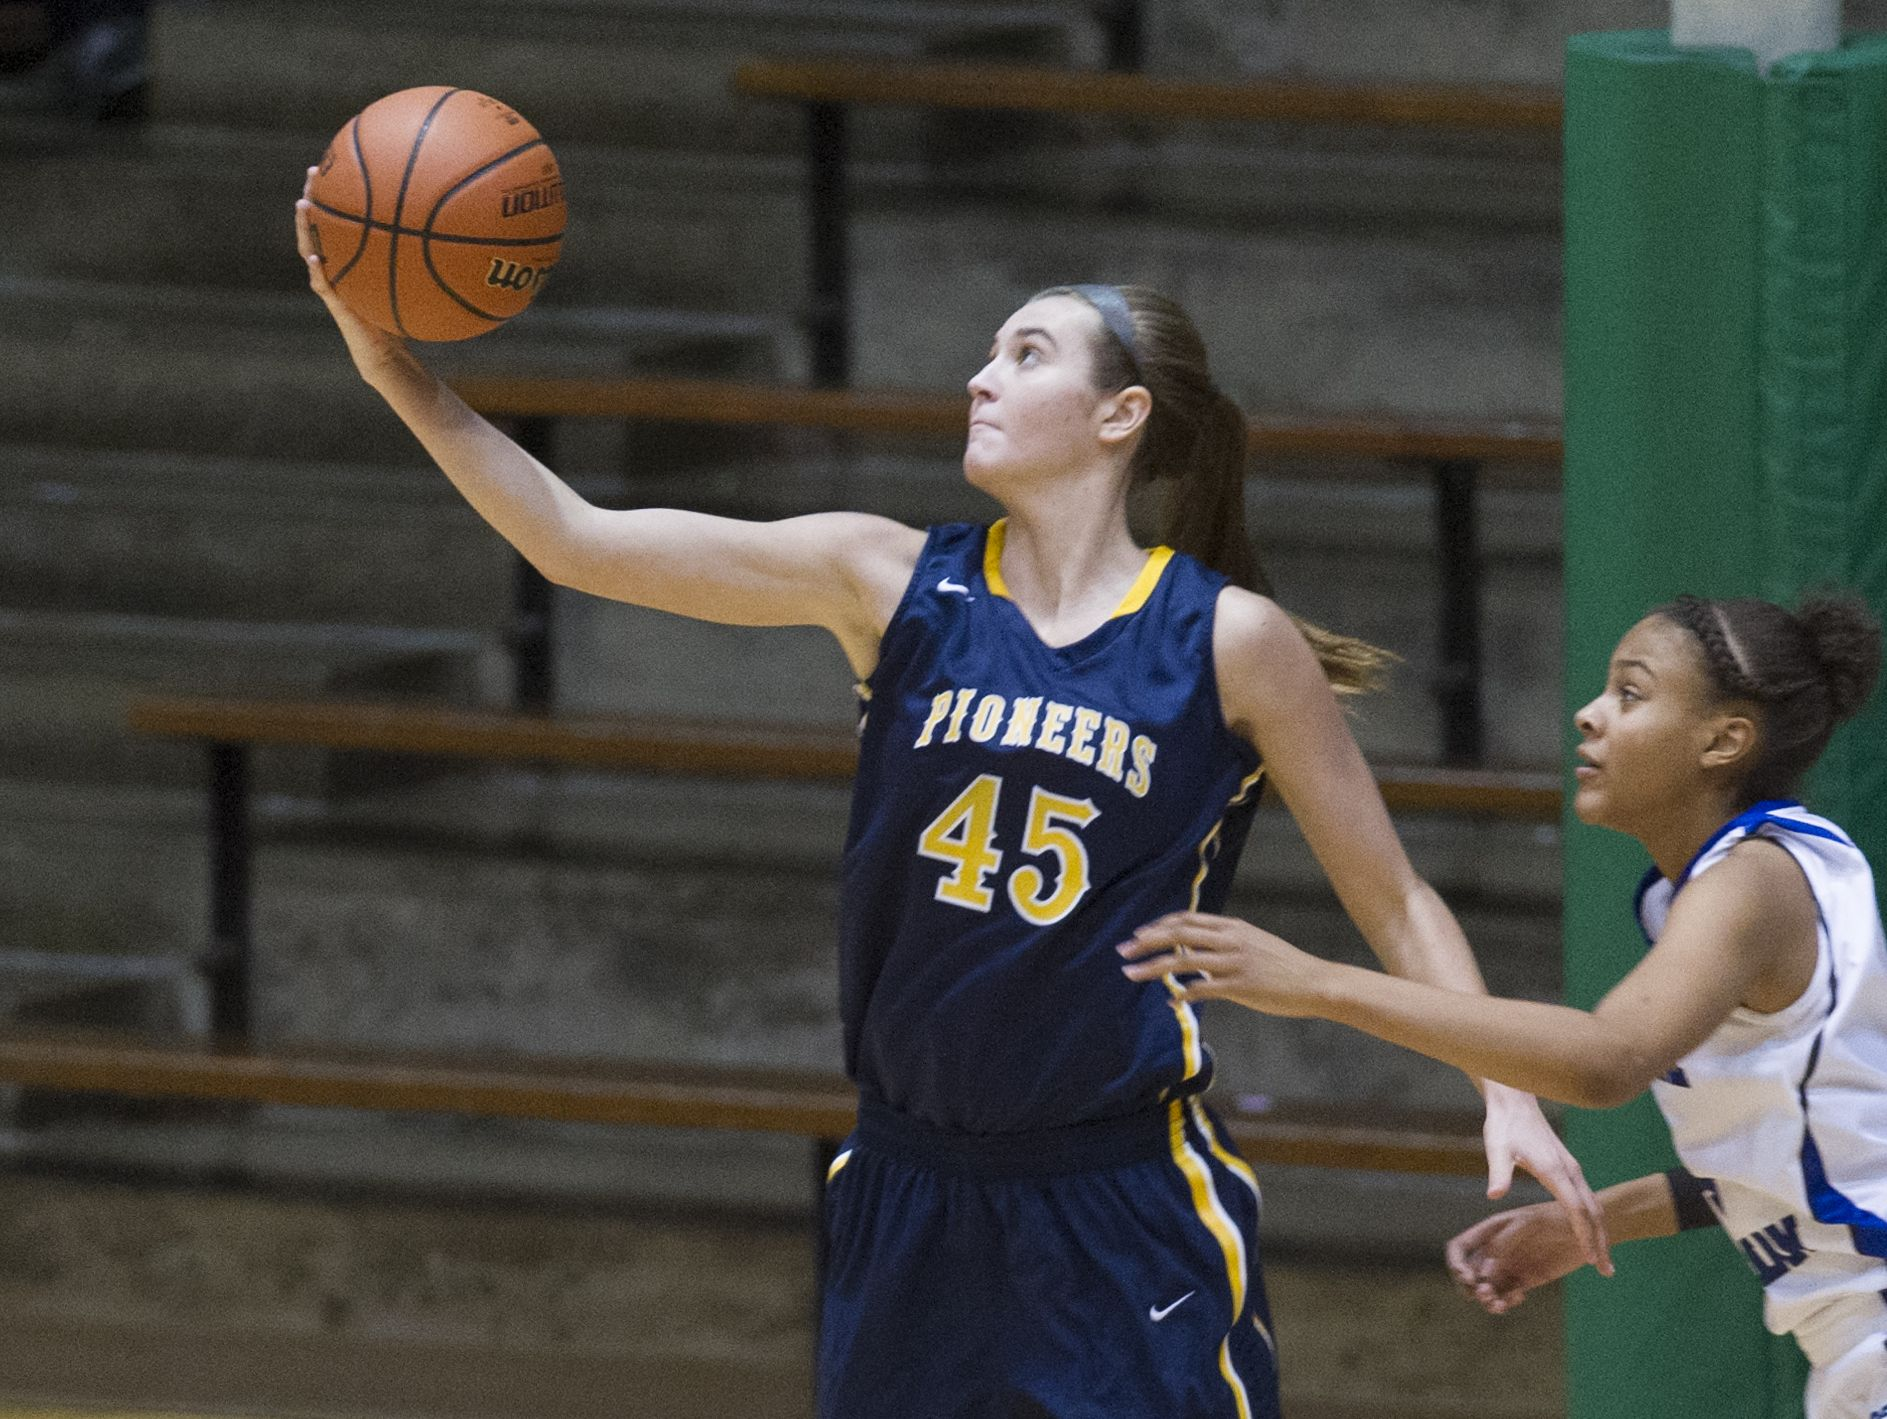 Mooresville's Amanda Worland (45) is one of the top post players in the area.